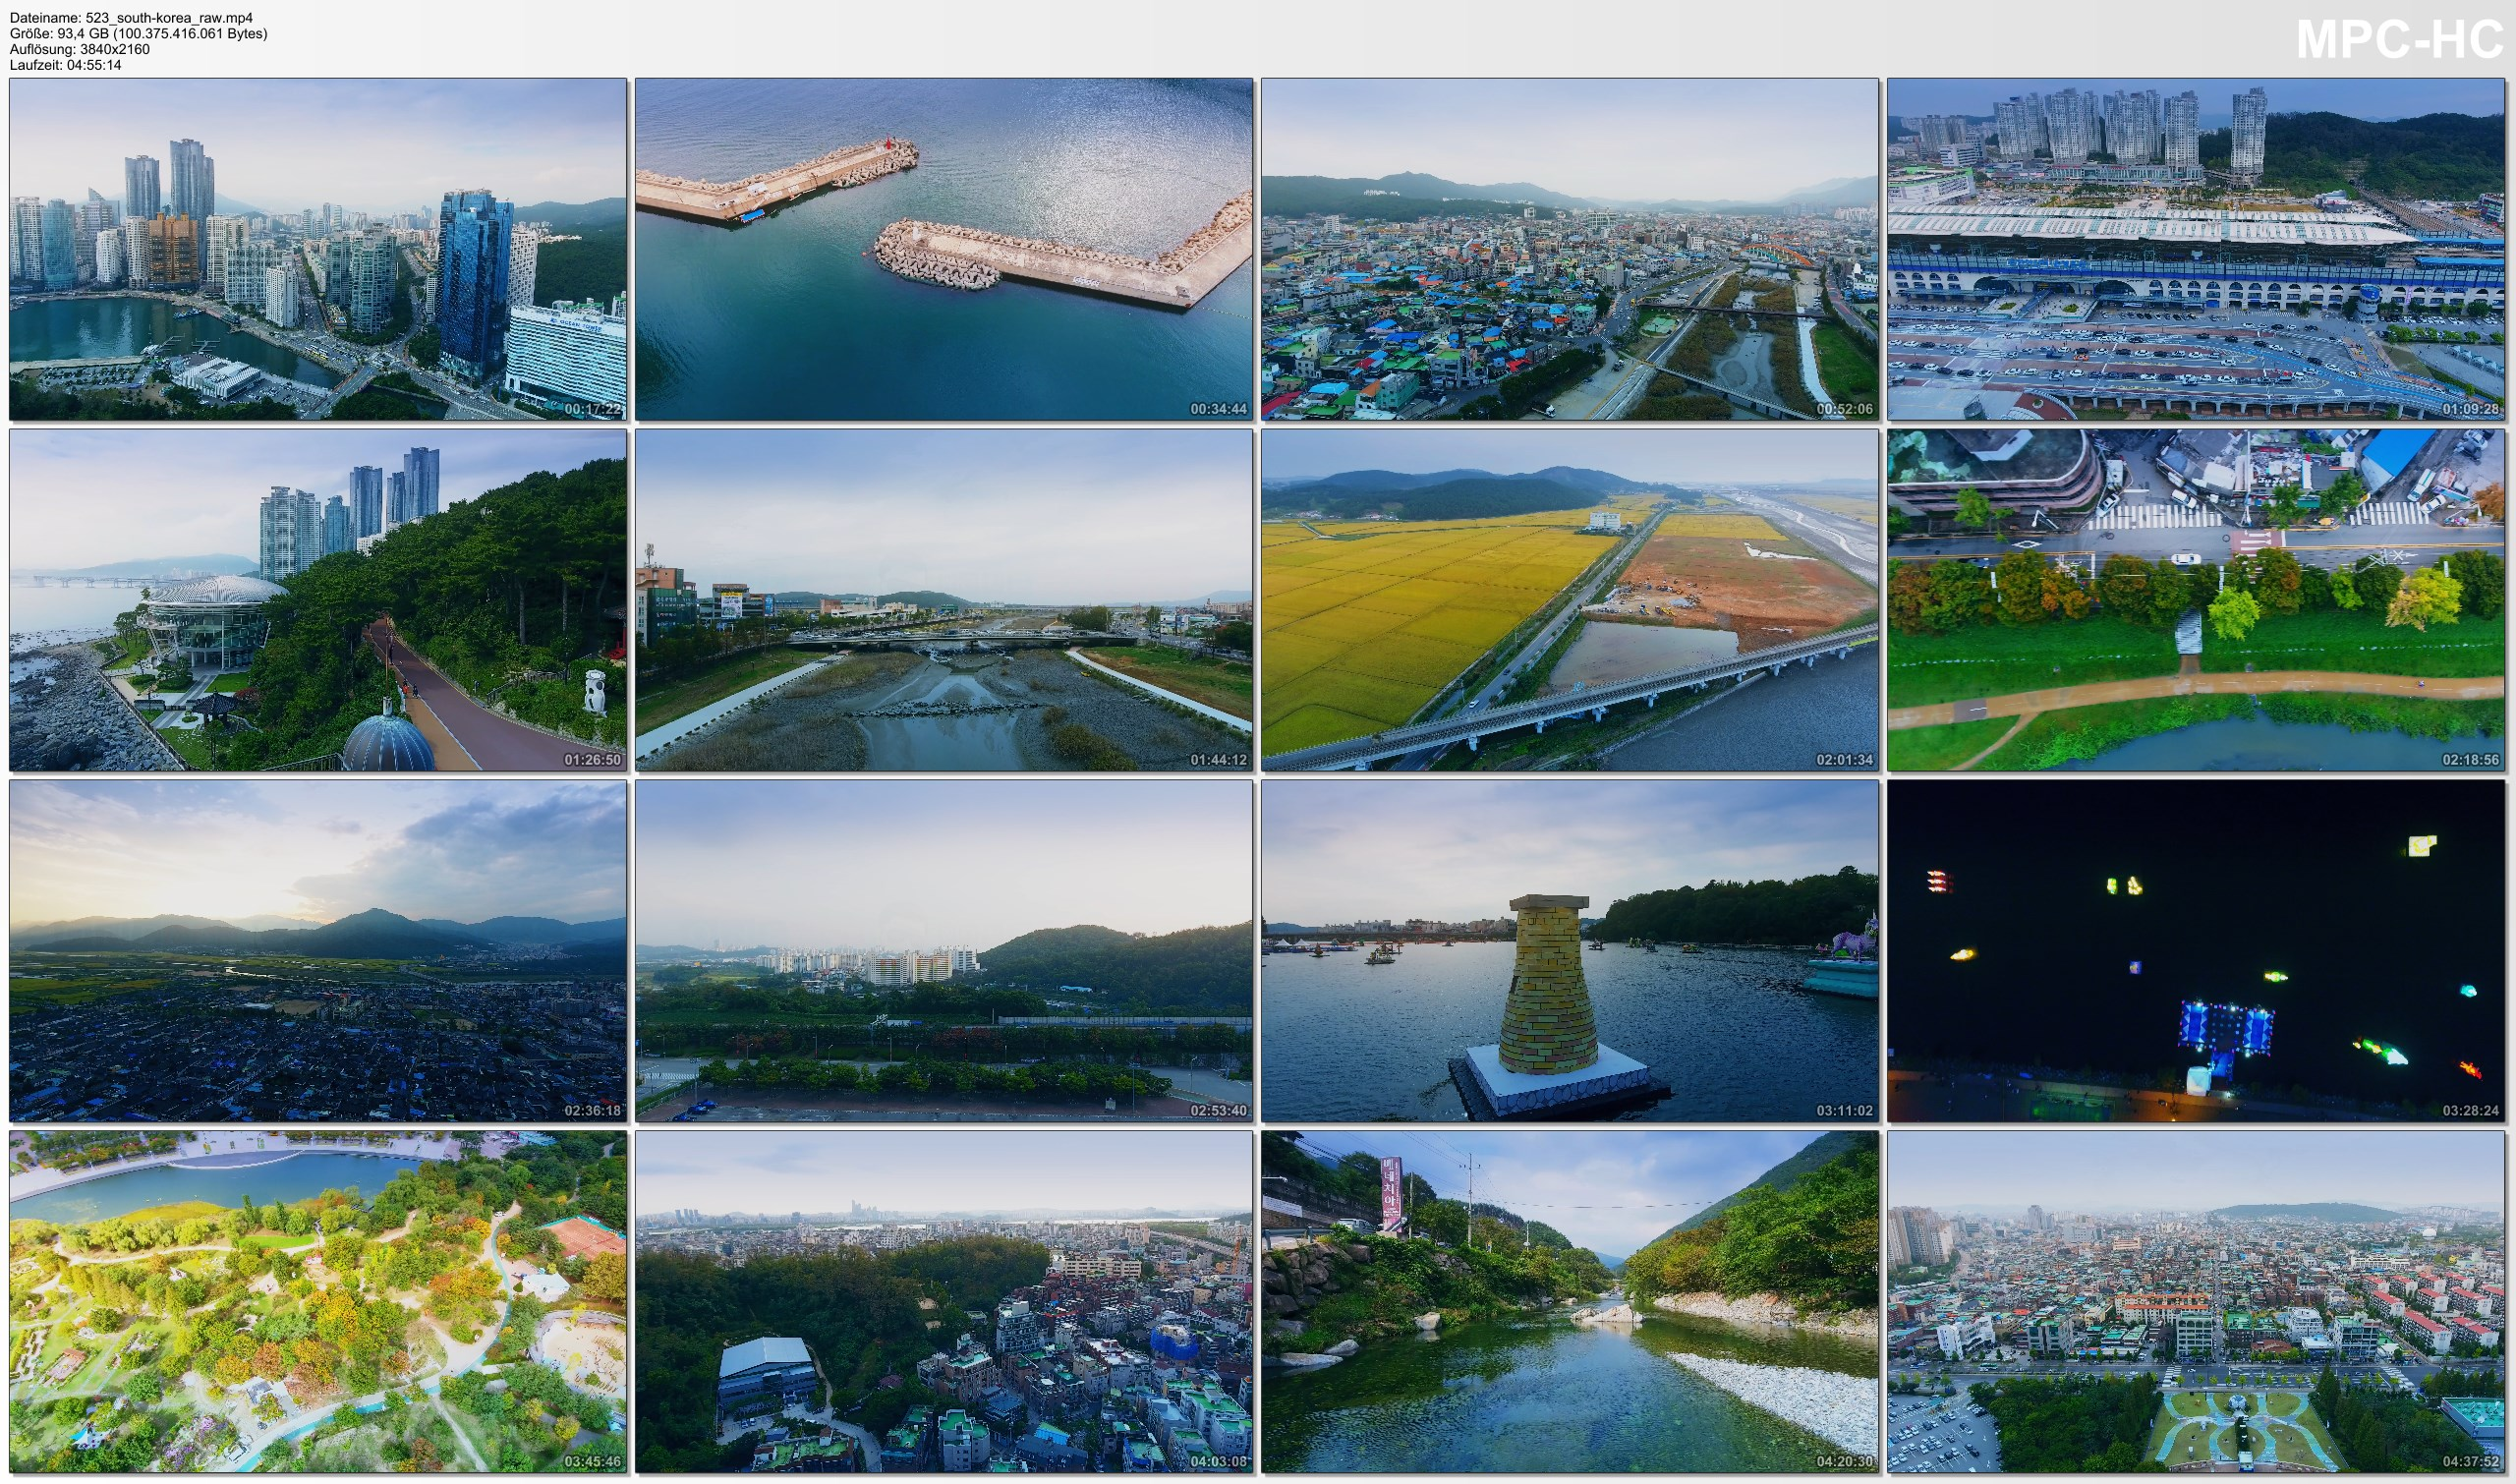 Drone Pictures from Video 【4K】Drone RAW Footage | This is SOUTH KOREA 2020 | Seoul | Busan and More | UltraHD Stock Video